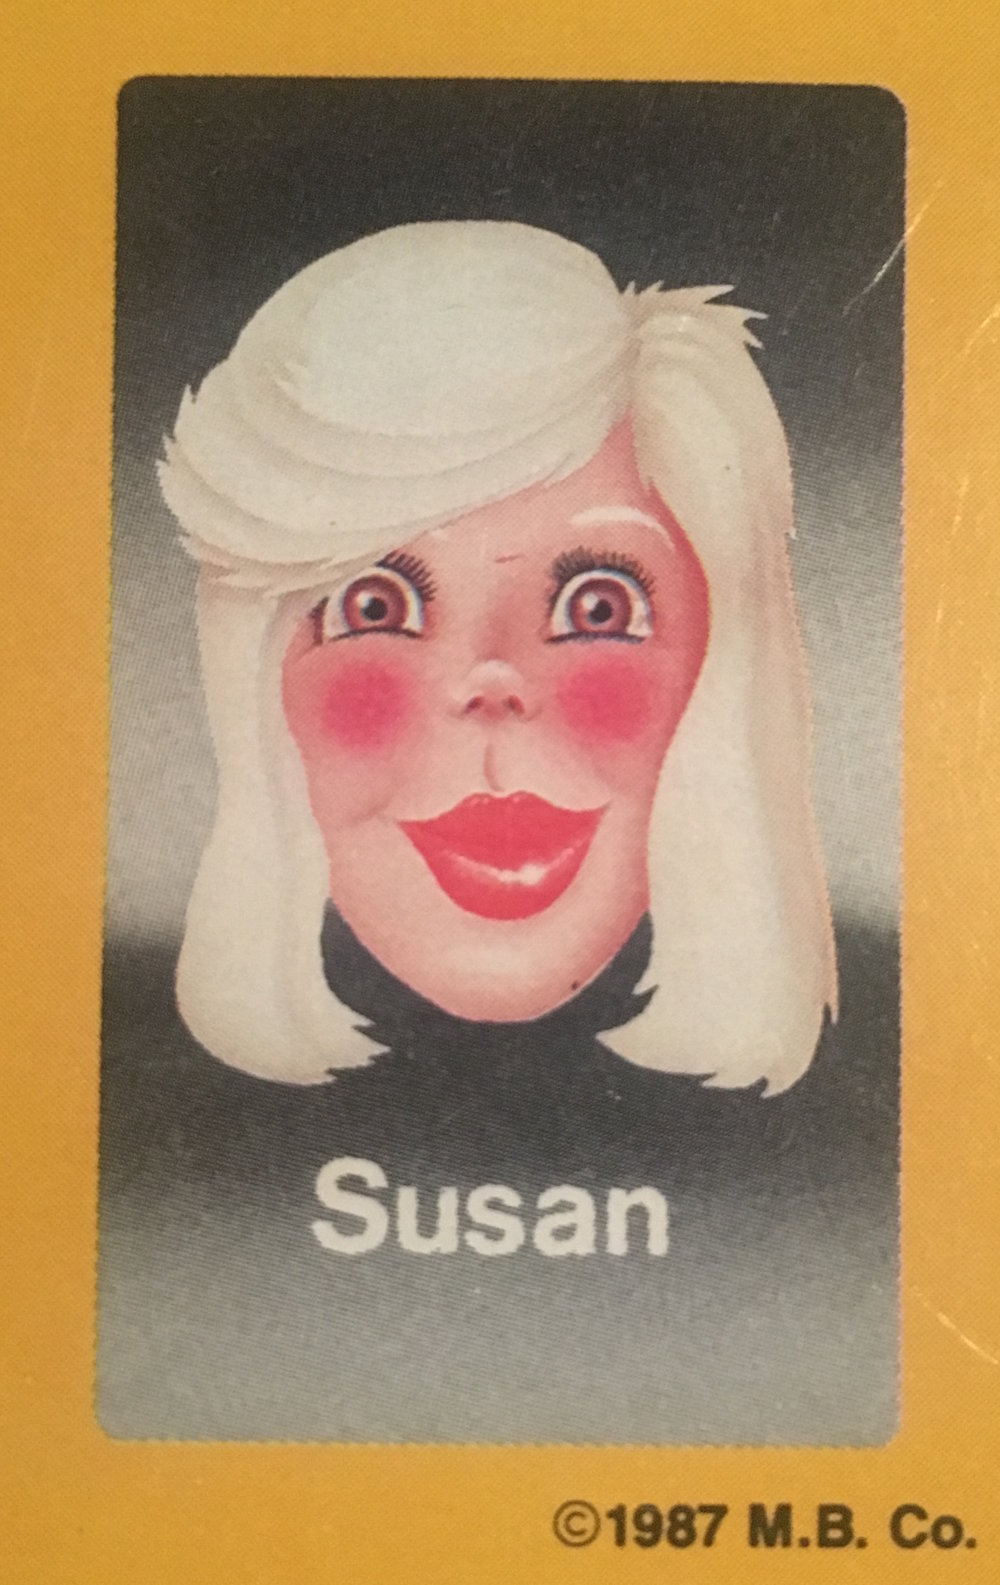 - Unbeknownst to the producers of the original Guess Who?®, Susan began life as a Sherman, before transitioning to a woman in her mid-20s. The 1970s were a less accepting time for transgendered individuals, so Susan kept it quiet. The secret eventually leaked to the Guess Who?® public in the '80s, and thankfully, the news was met with widespread warmth and understanding. The only backlash was with regards to how the information would change the actual Guess Who?® gameplay; education began in ernest, playing no small part in beginning to educate the American public on how to properly inquire about gender and identity.